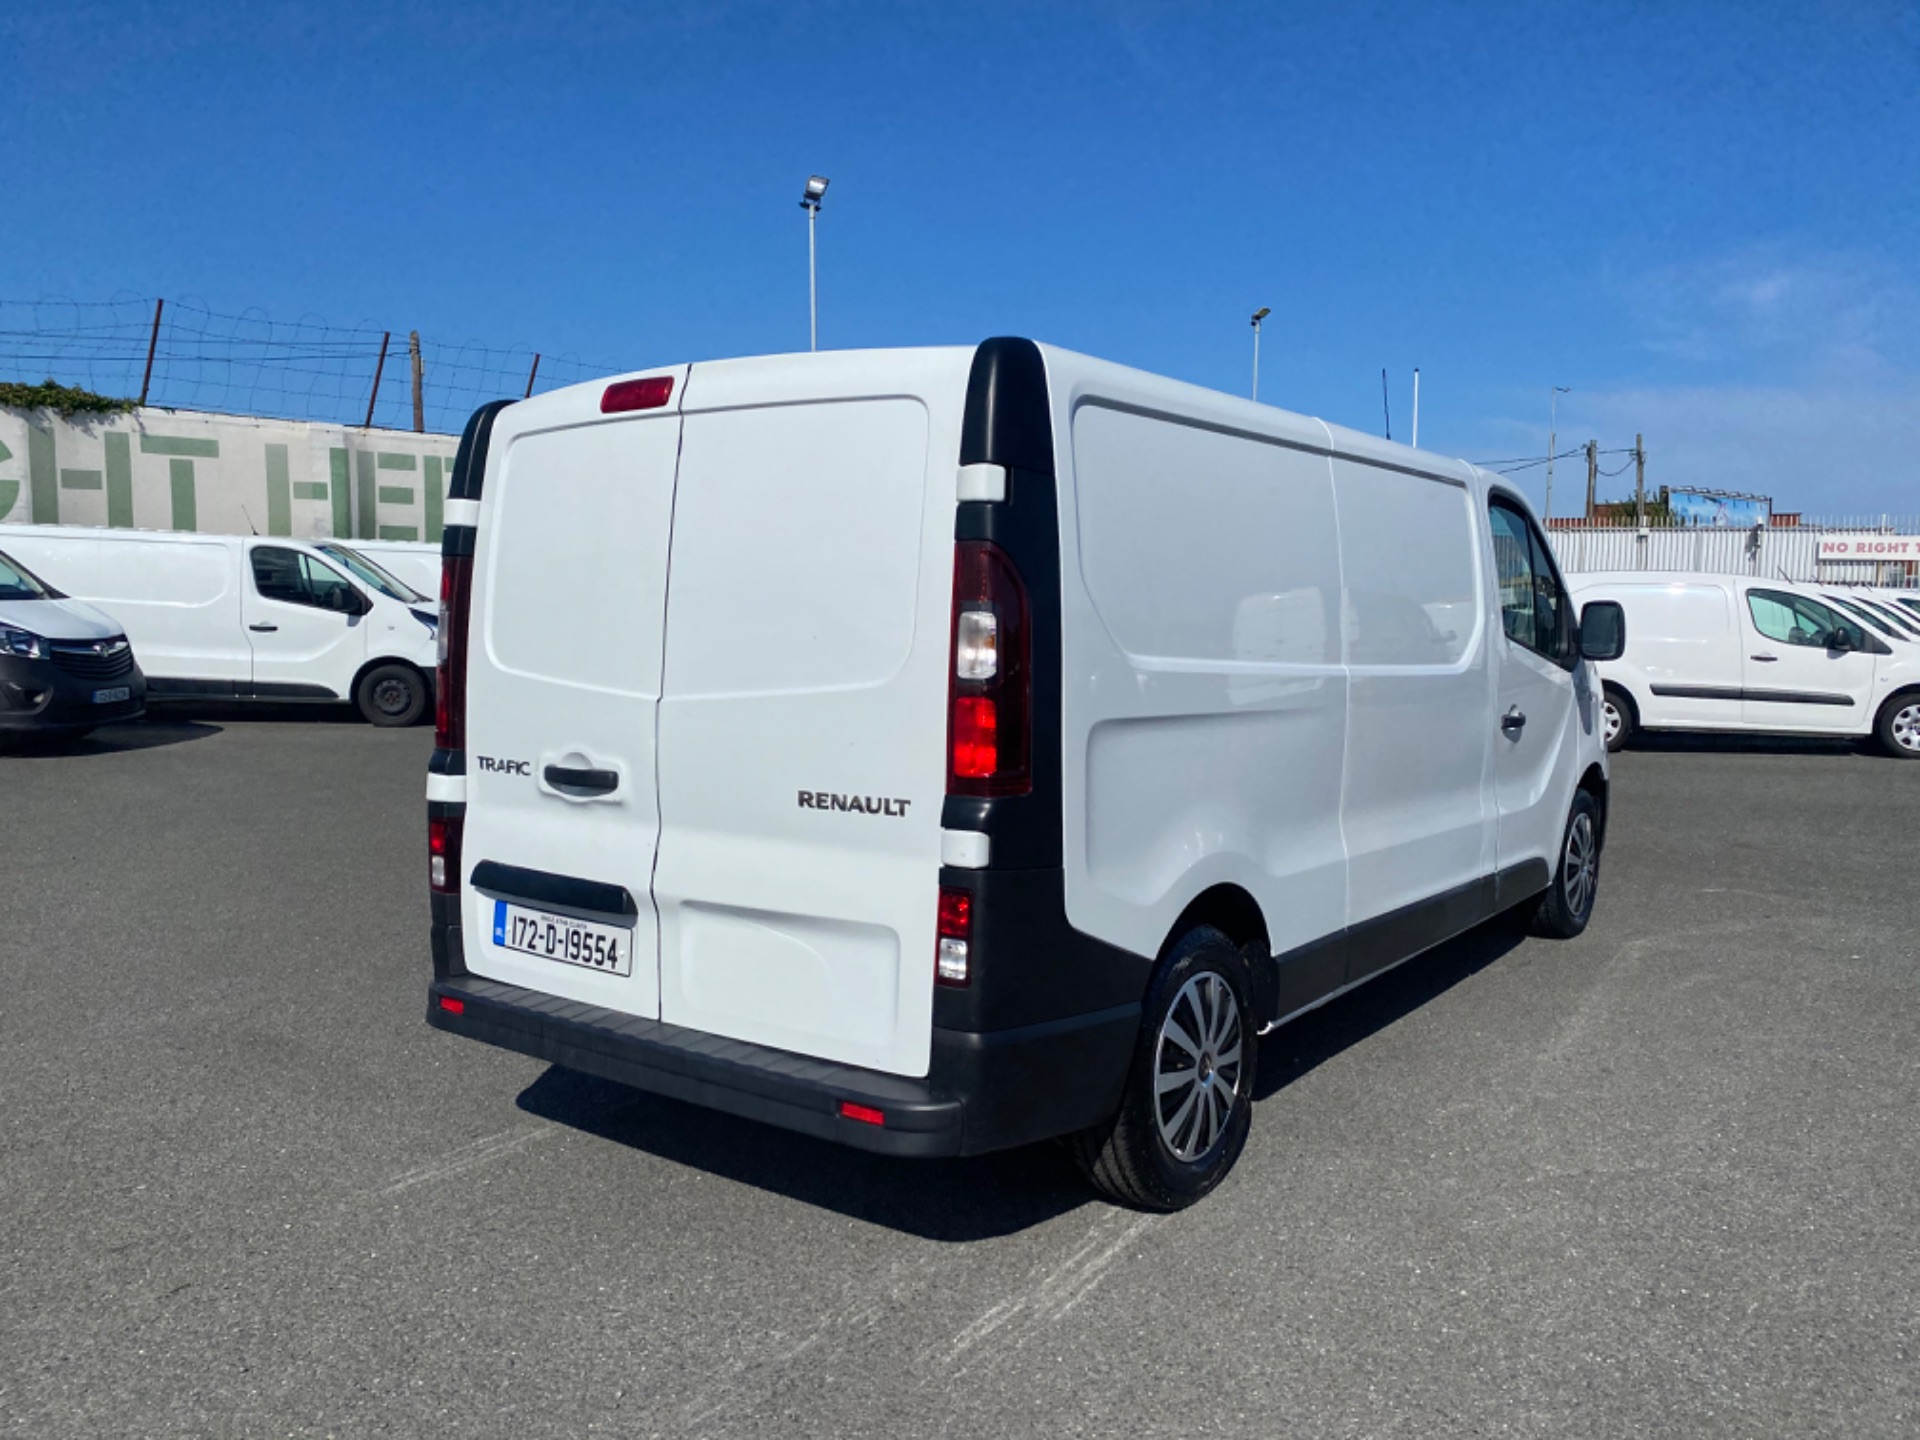 2017 Renault Trafic LL29 DCI 120 BUSINESS 3DR (172D19554) Image 10